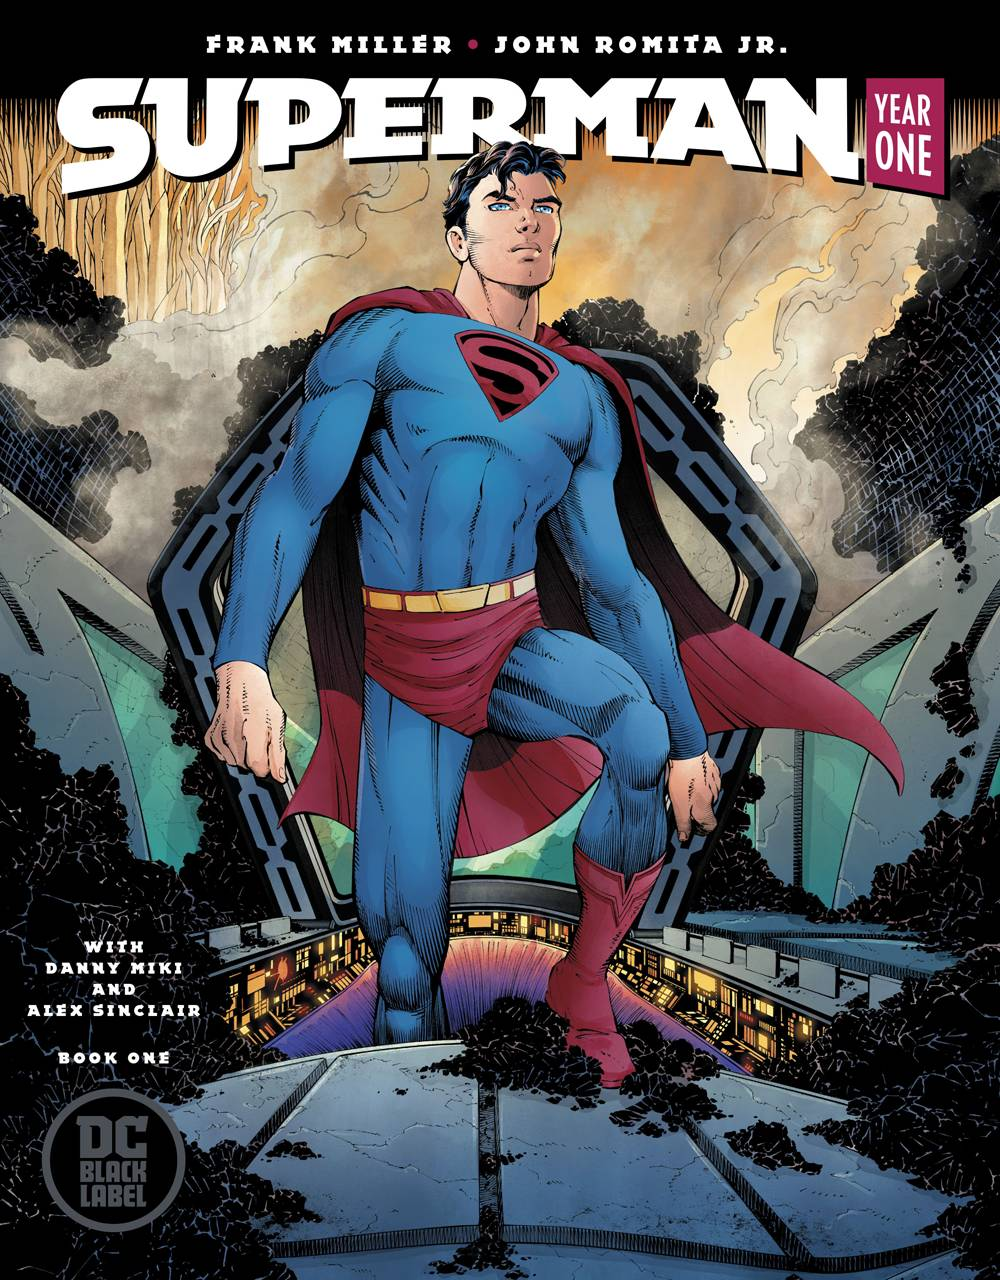 SUPERMAN YEAR ONE 1 of 3 ROMITA  COVER.jpg